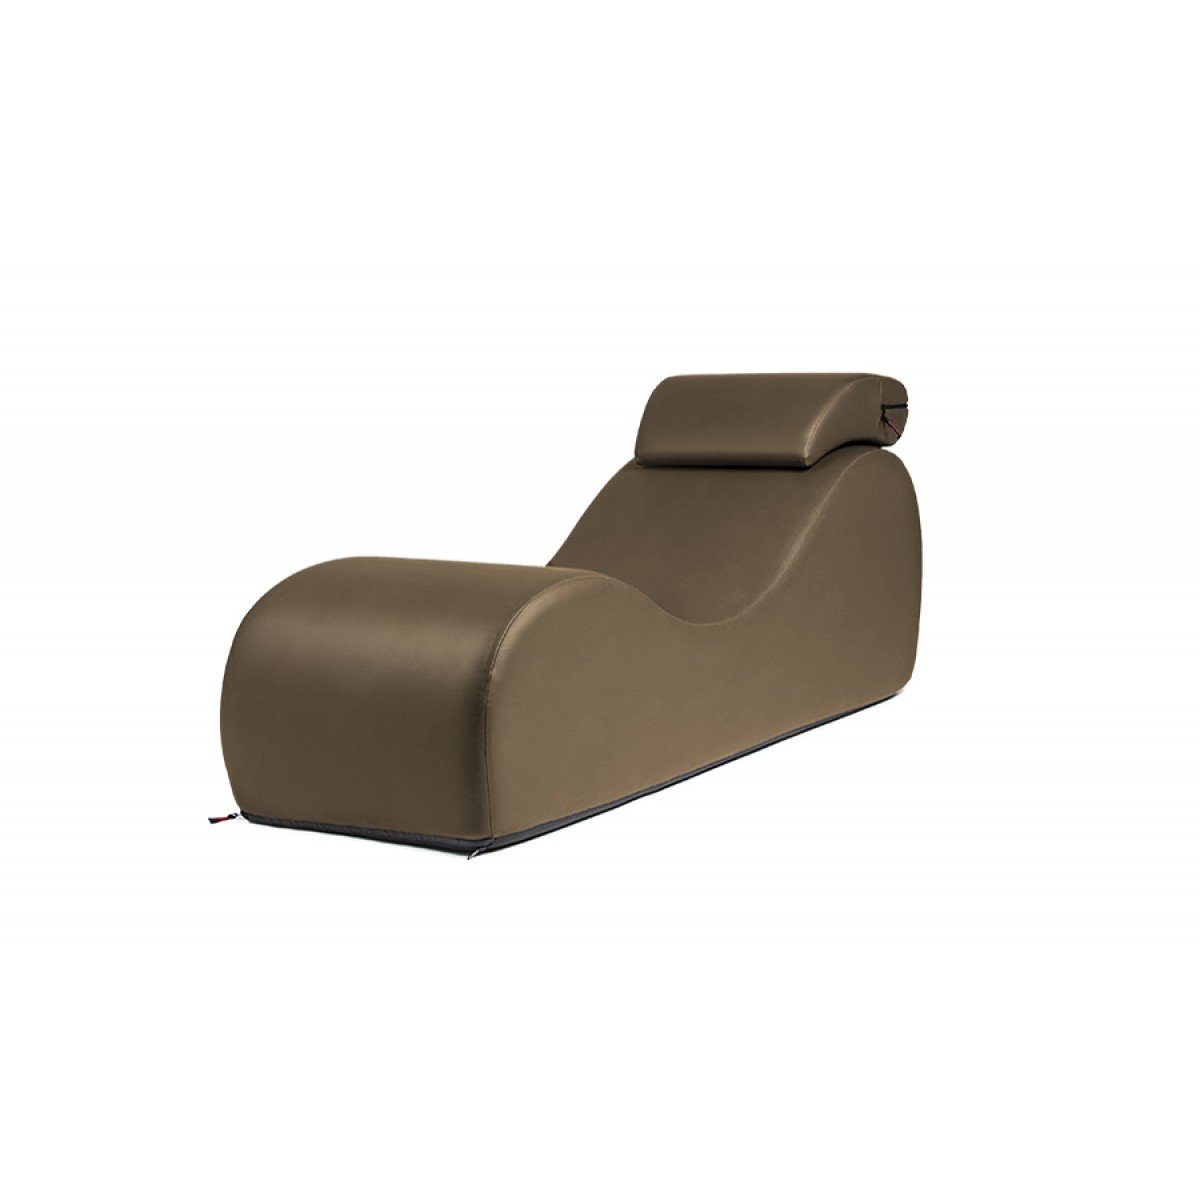 Liberator Esse Chaise, Taupe Faux Leather by Liberator